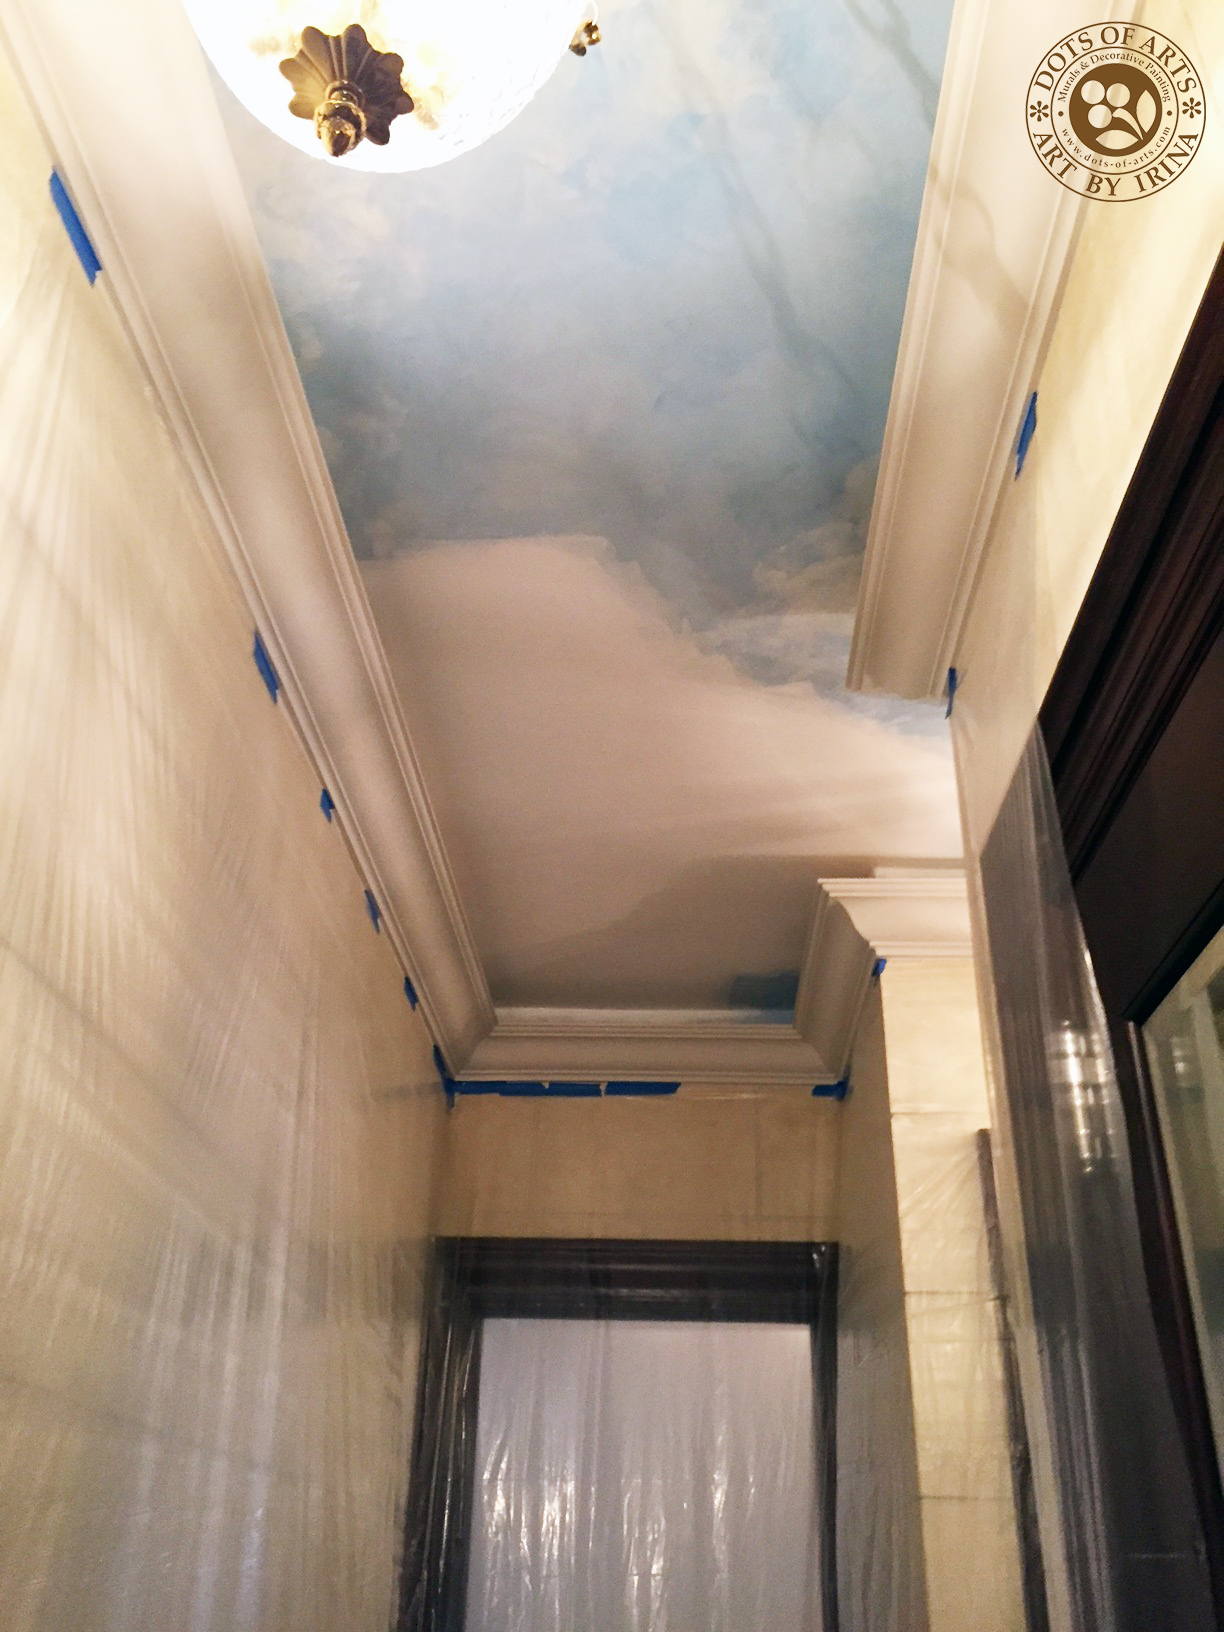 dots_of_arts_murals_decorative_painting_NJ_NY_restorations_Manhattan_hallway_sky_clouds_before.jpg